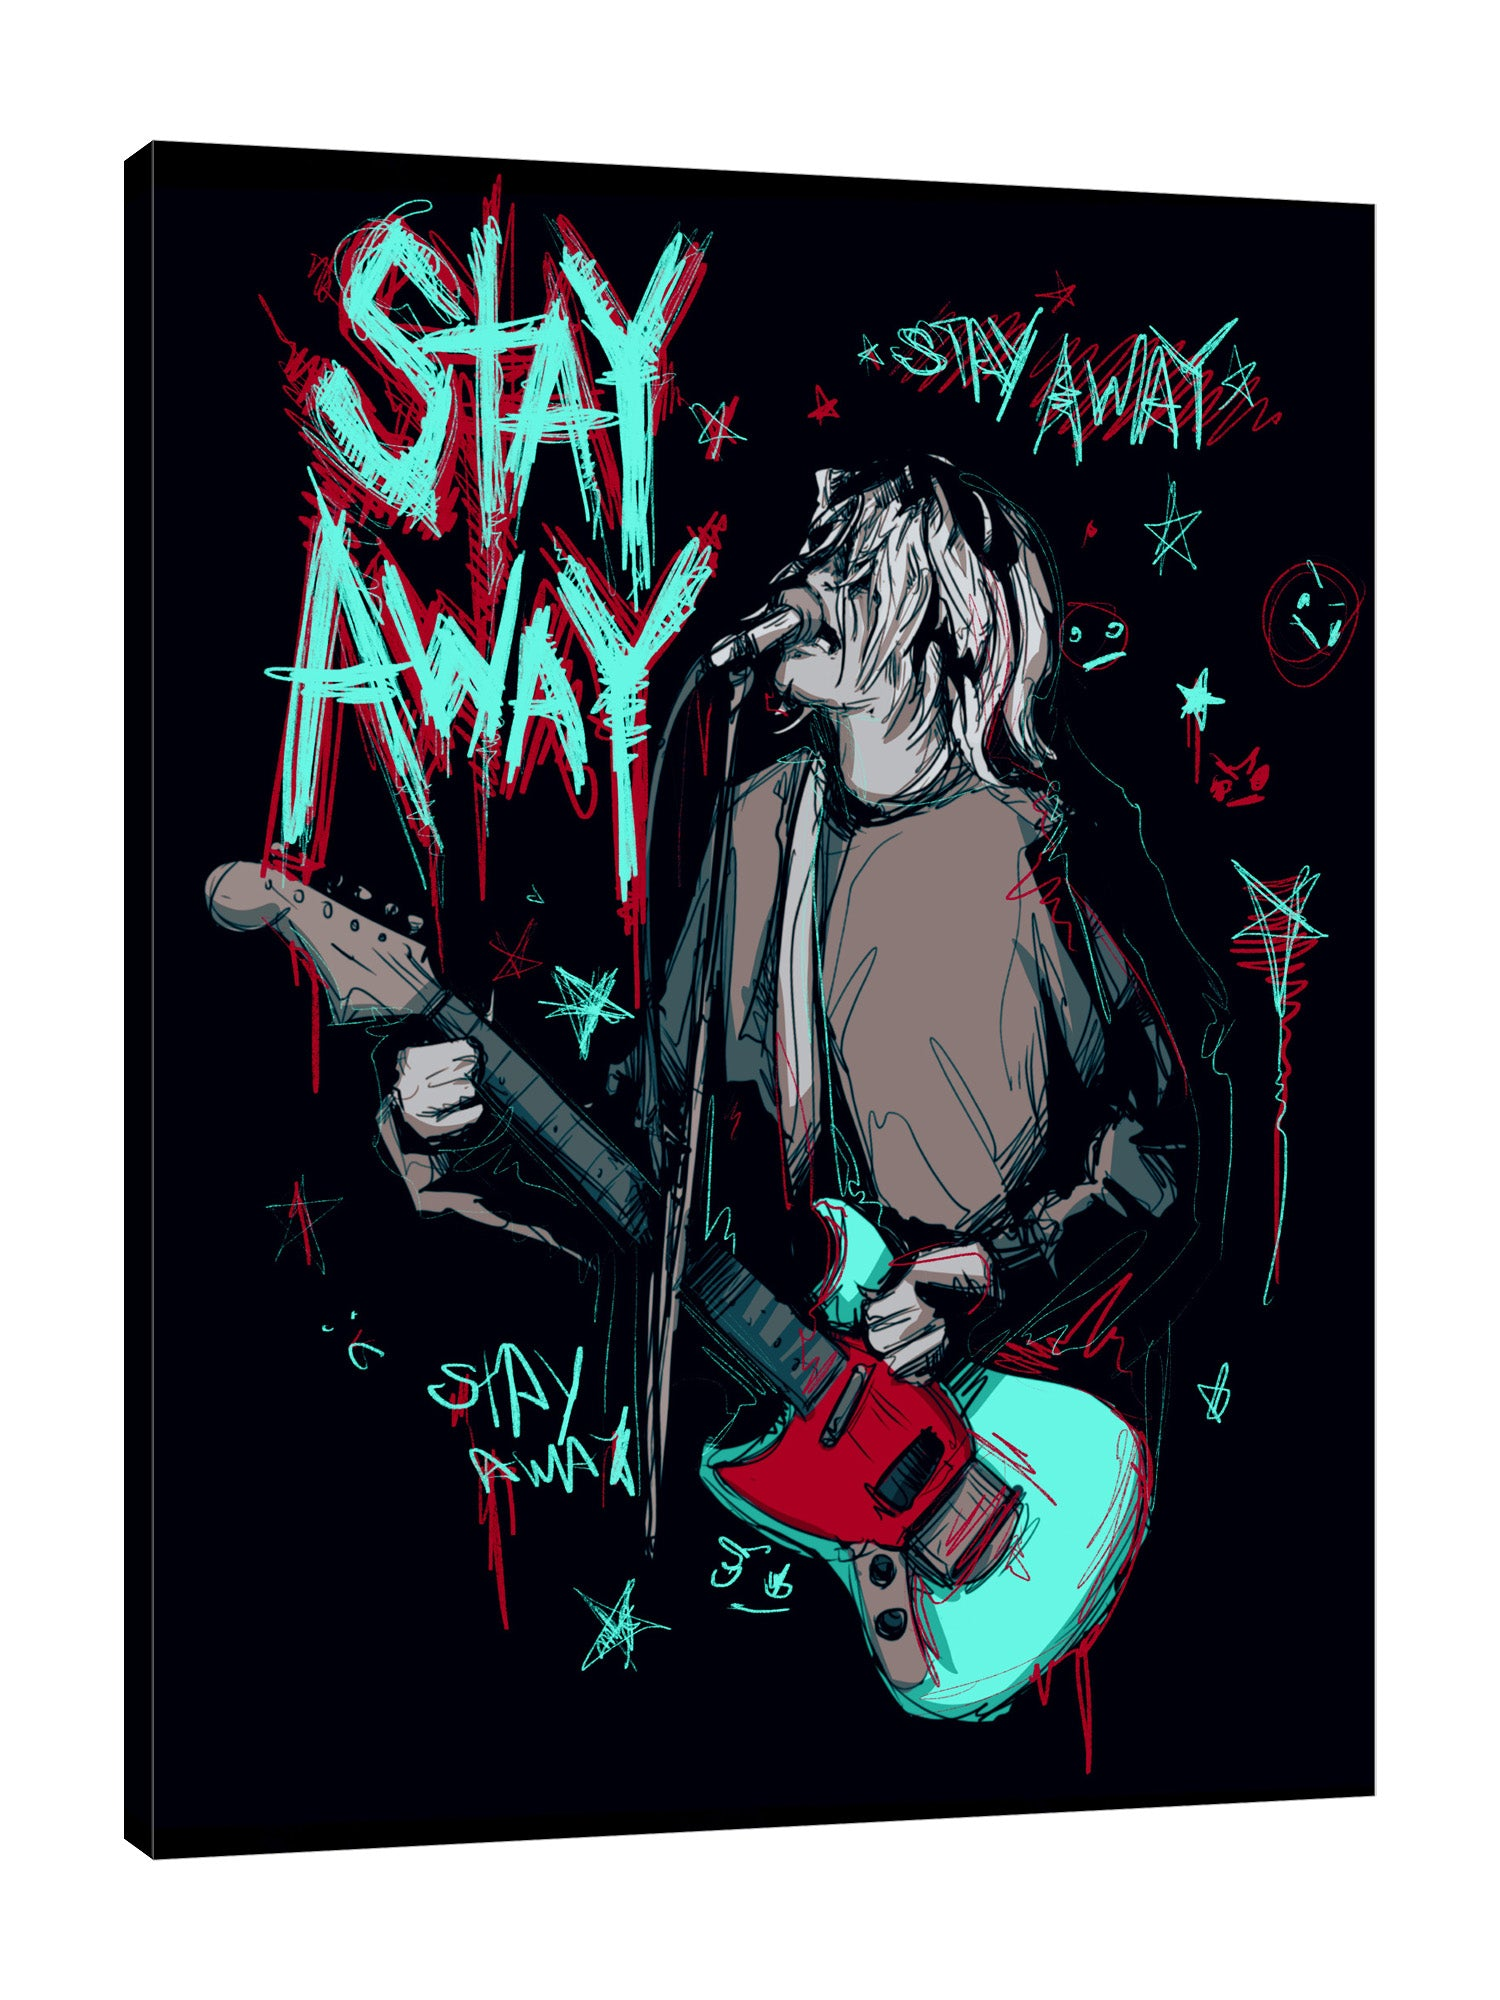 Ludwig-Van-Bacon,Vertical,3X4,Modern & Contemporary,People,Entertainment,entertainer,singer,musician,guitar,guitars,scribble,scribbles,words,stay away,star,stars,singing,mic,music,Forest Green,Red,Black,Charcoal Gray,Purple,Blue